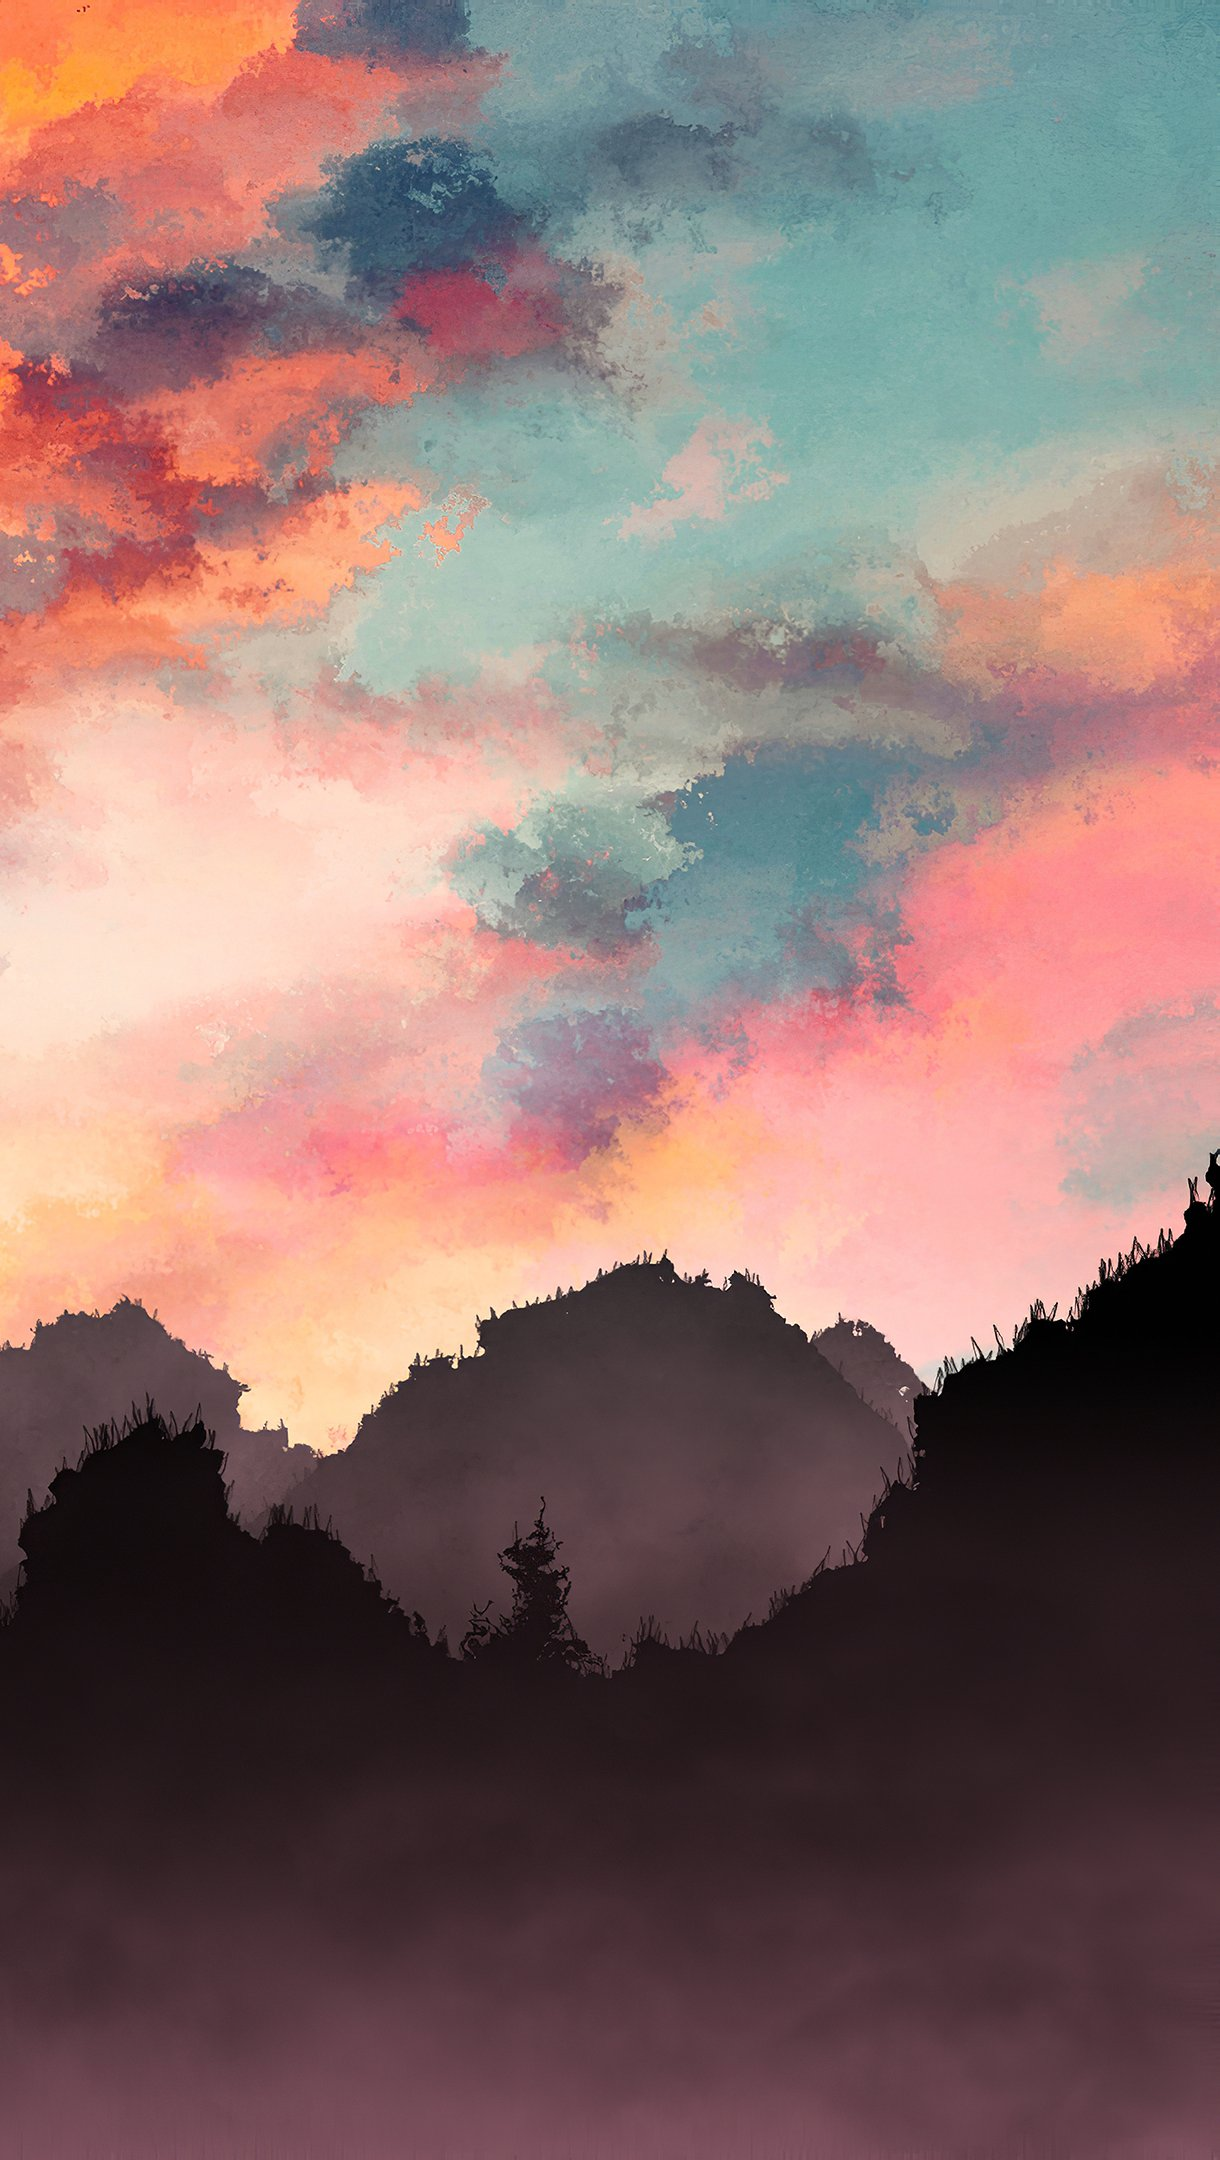 Wallpaper Mountains painting with mist at sunset Vertical